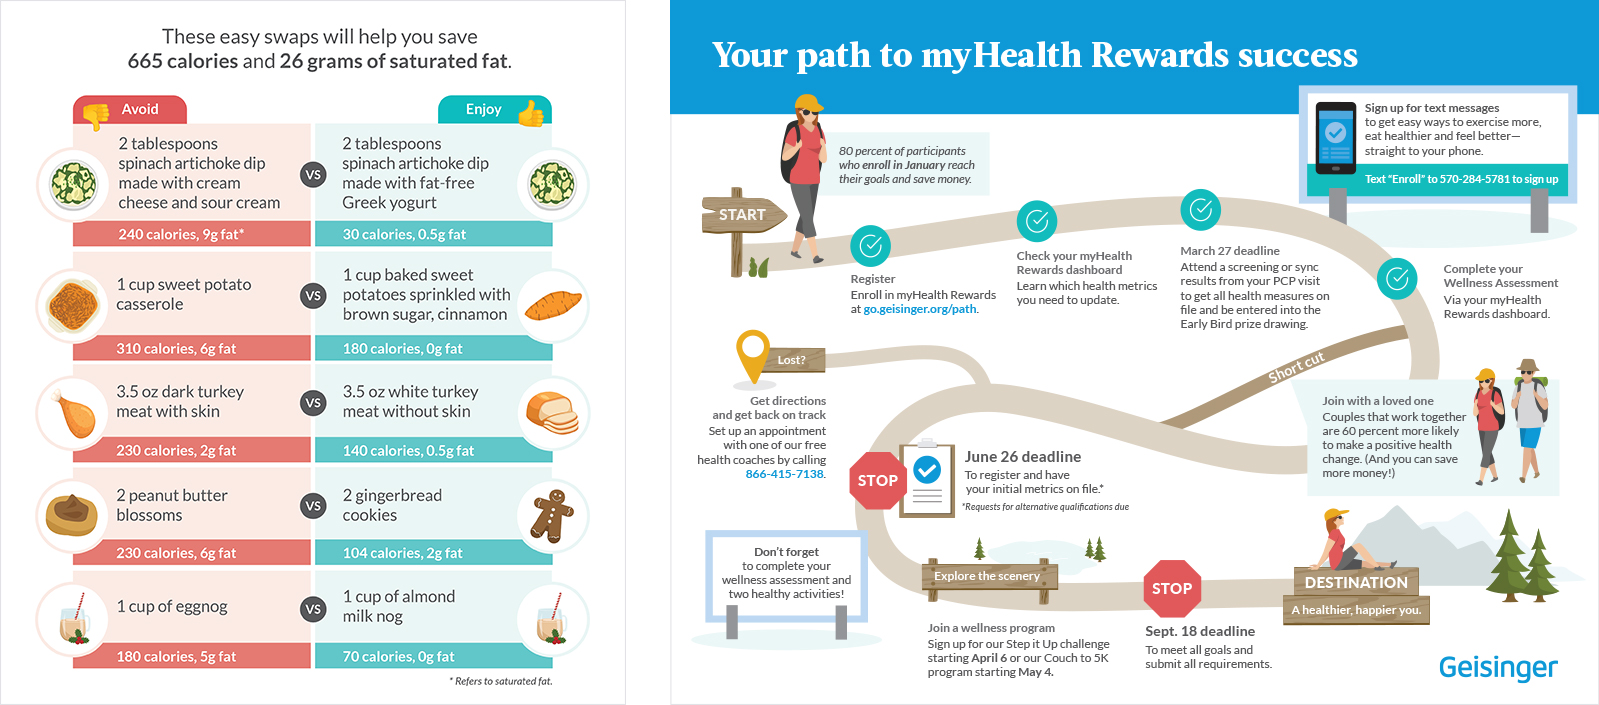 Geisinger MyHealth Rewards food swaps and pathway to success collateral